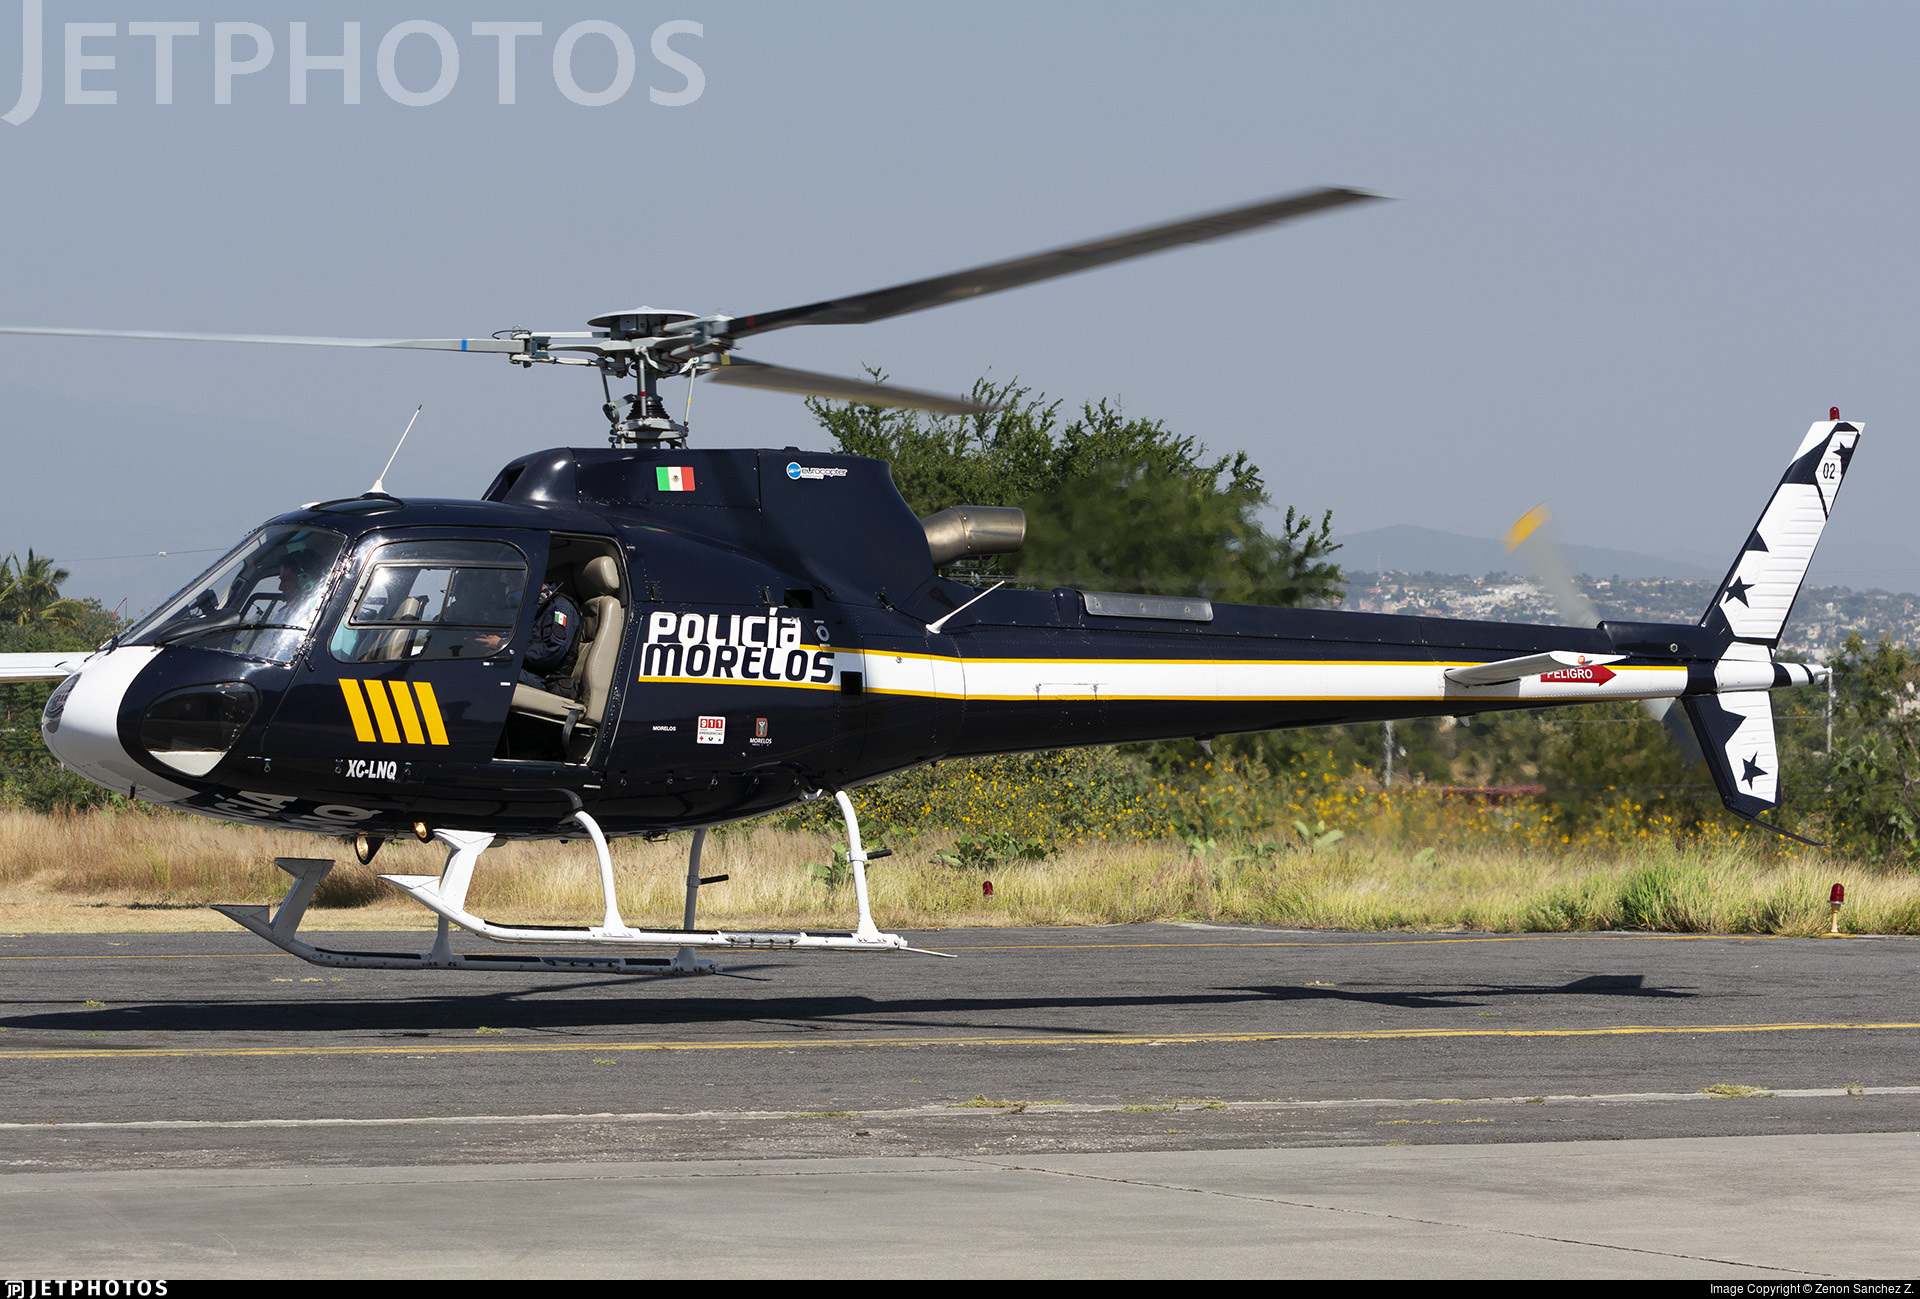 XC-LNQ - Eurocopter AS 350B3 Ecureuil - Mexico - Morelos State Government